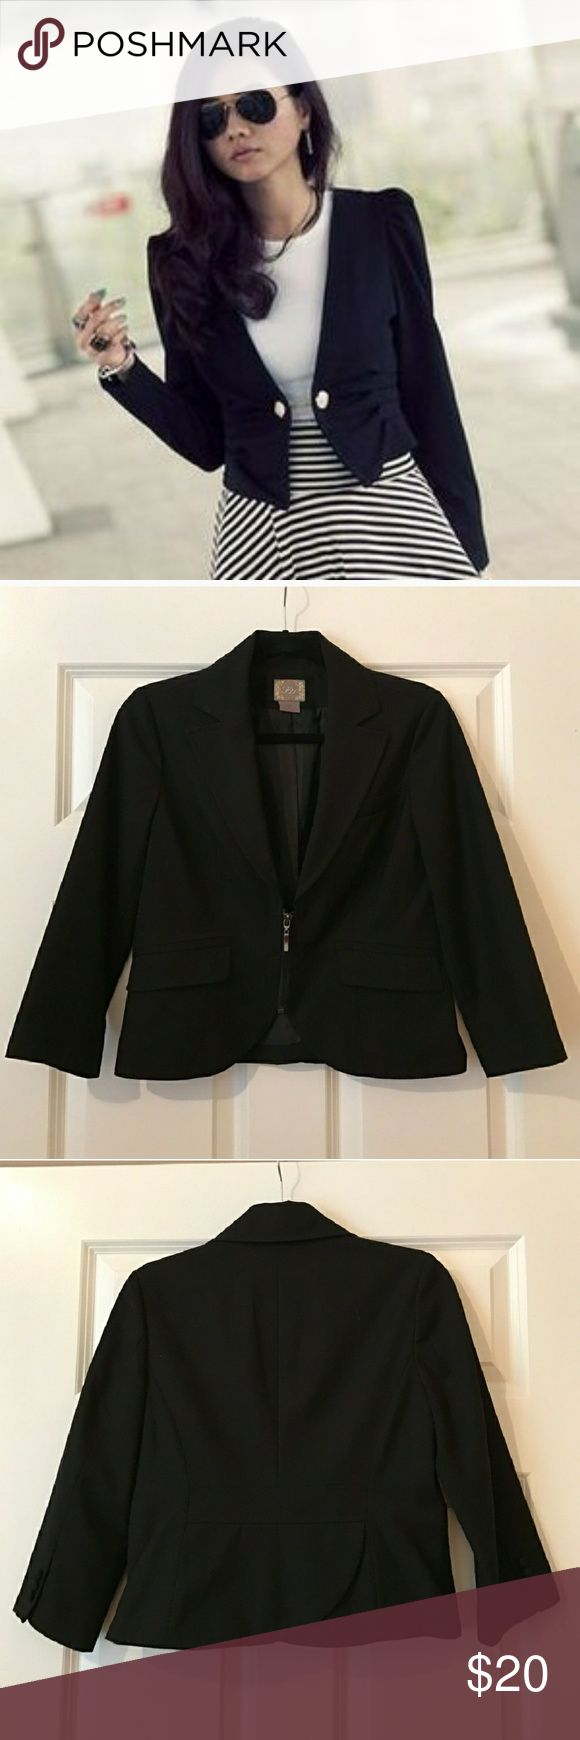 F21 Forever 21 Crop Blazer 3/4 Black Career M Zip Beautiful cropped blazer by Forever 21, never worn. Perfect for that power outfit! Zipper detail, 3/4 sleeve. Please see last 4 pictures for actual item. First picture is for styling and suggestion. Forever 21 Jackets & Coats Blazers